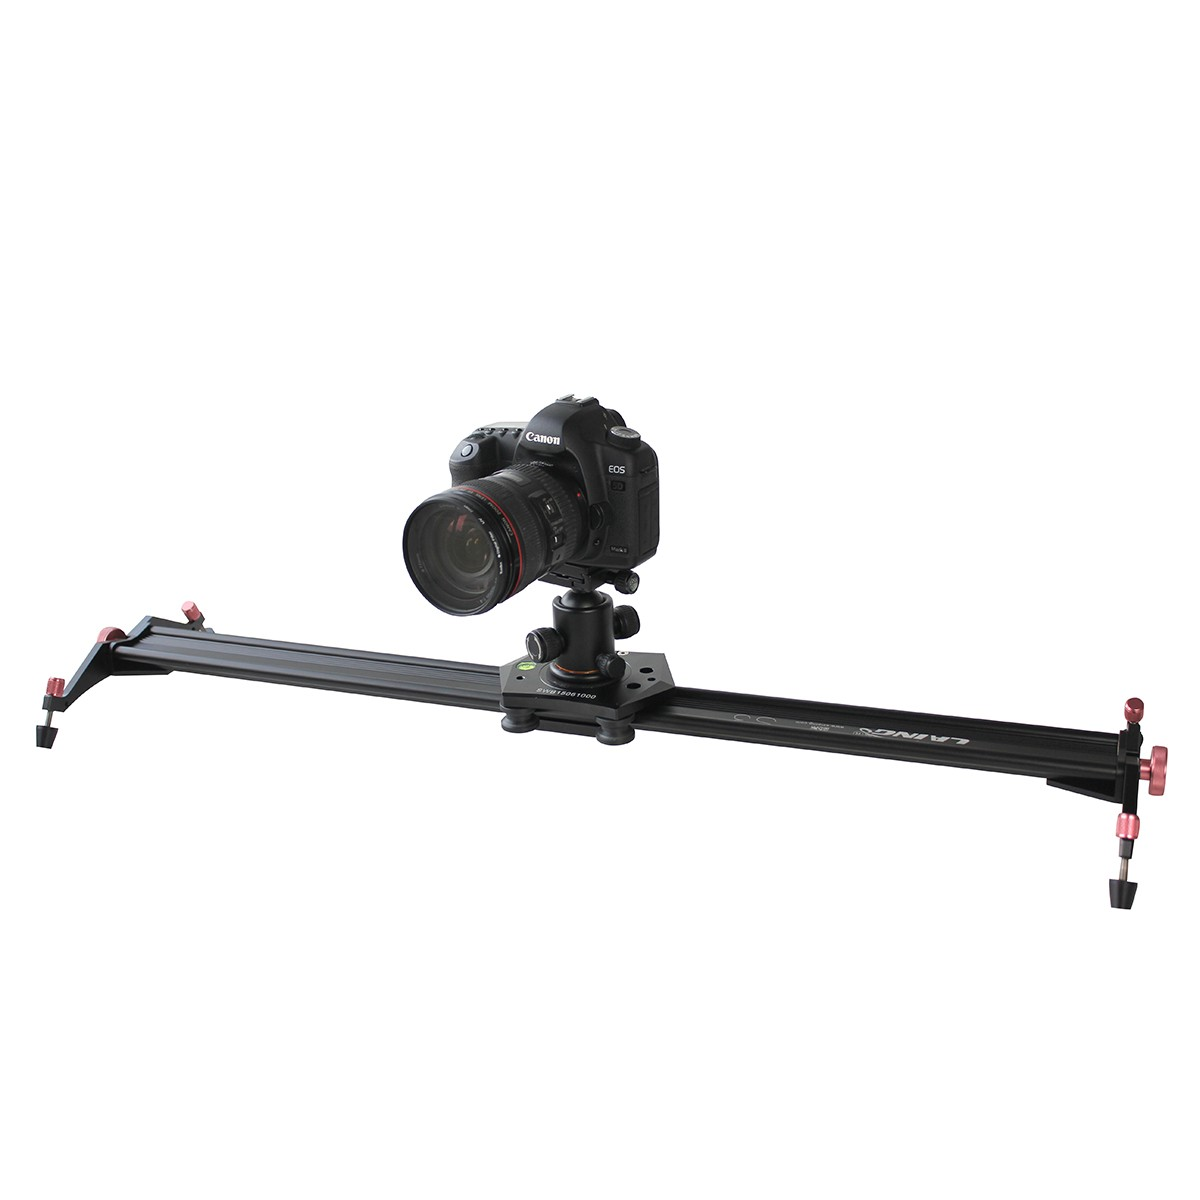 Laing S3 40 Inch DSLR Camera Slider Dolly Track Video Stabilizer with 22lb/10kg Load Capacity with 4 Damping Adjustable Bearings mb barbell mbevkl